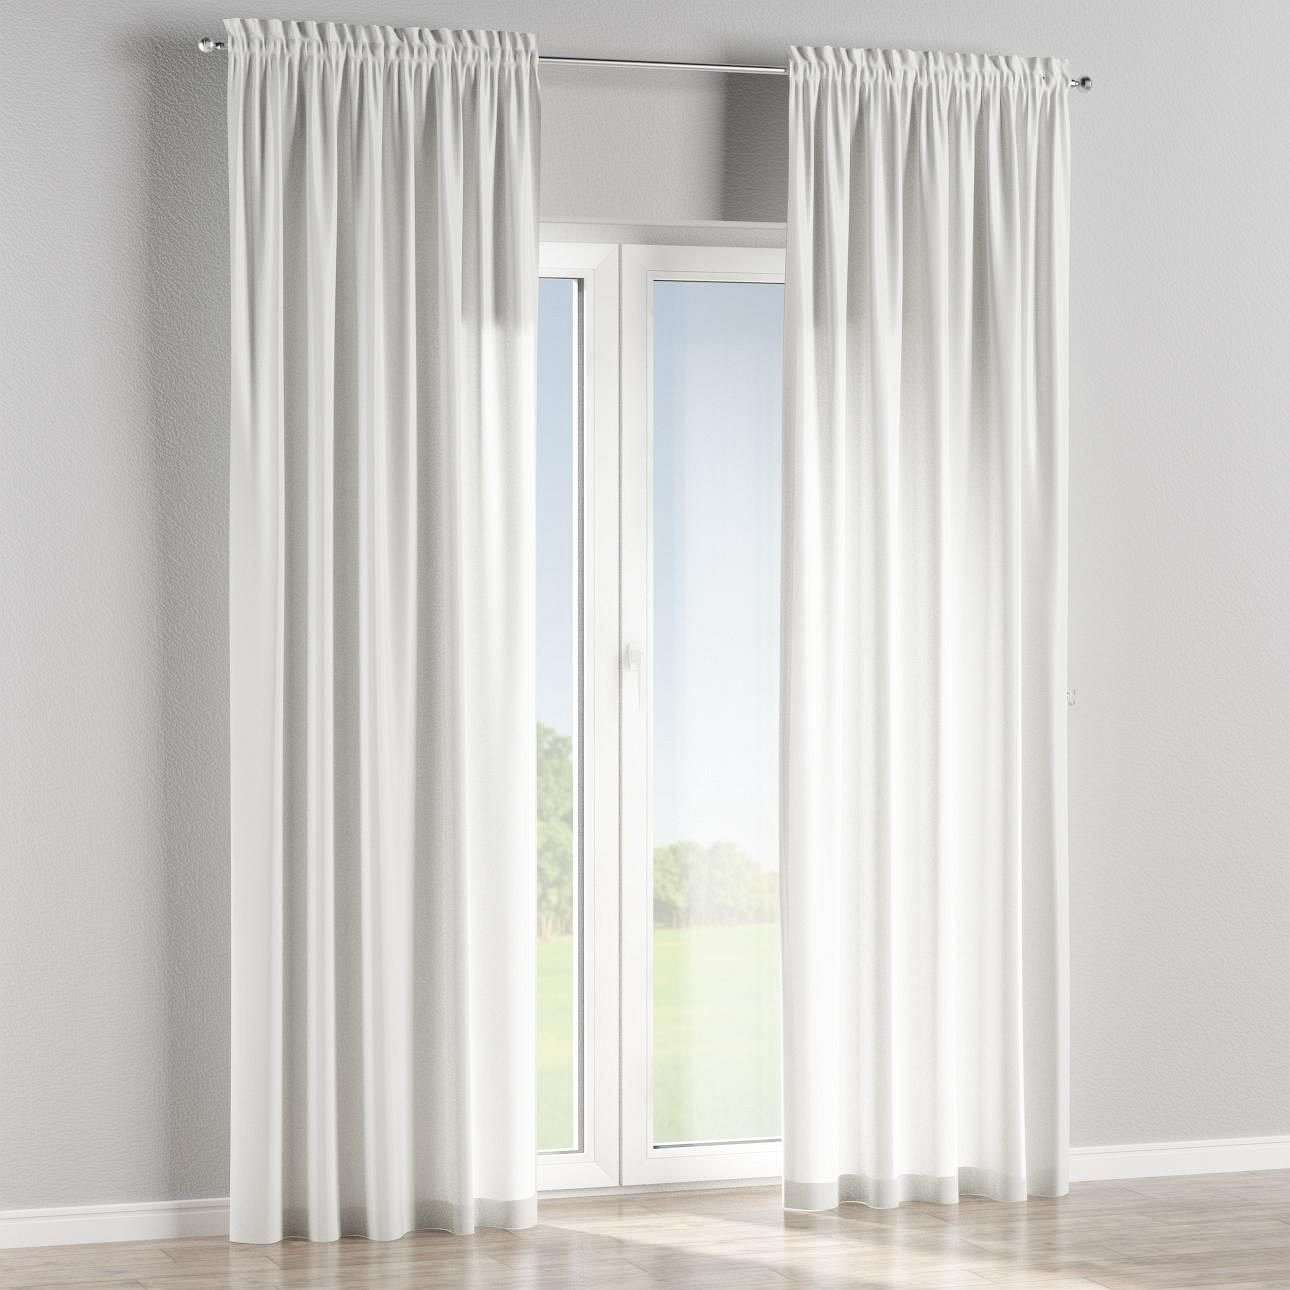 Slot and frill curtains in collection Flowers, fabric: 302-01